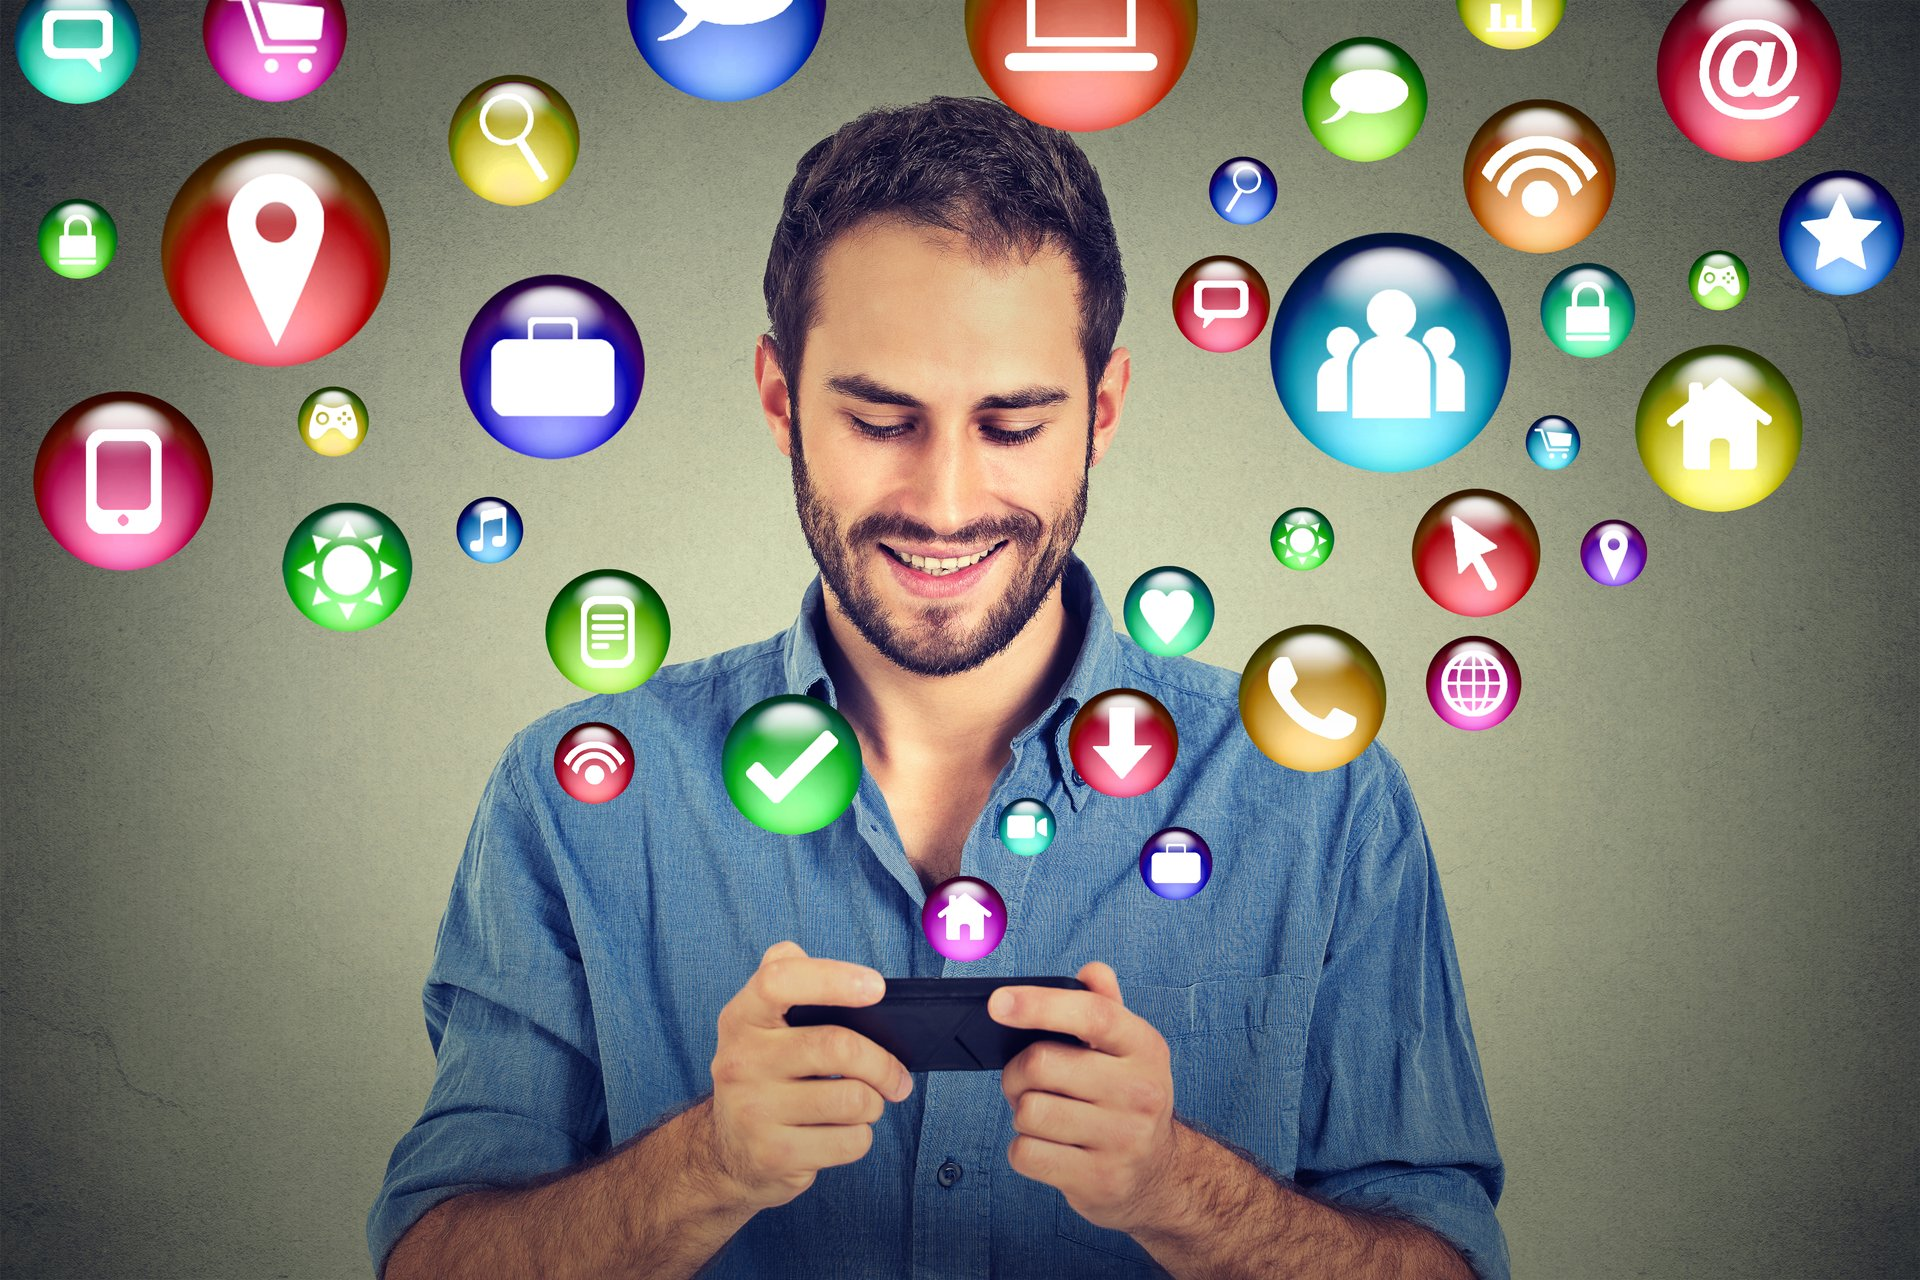 Man looking at cellphone with icons flying out.